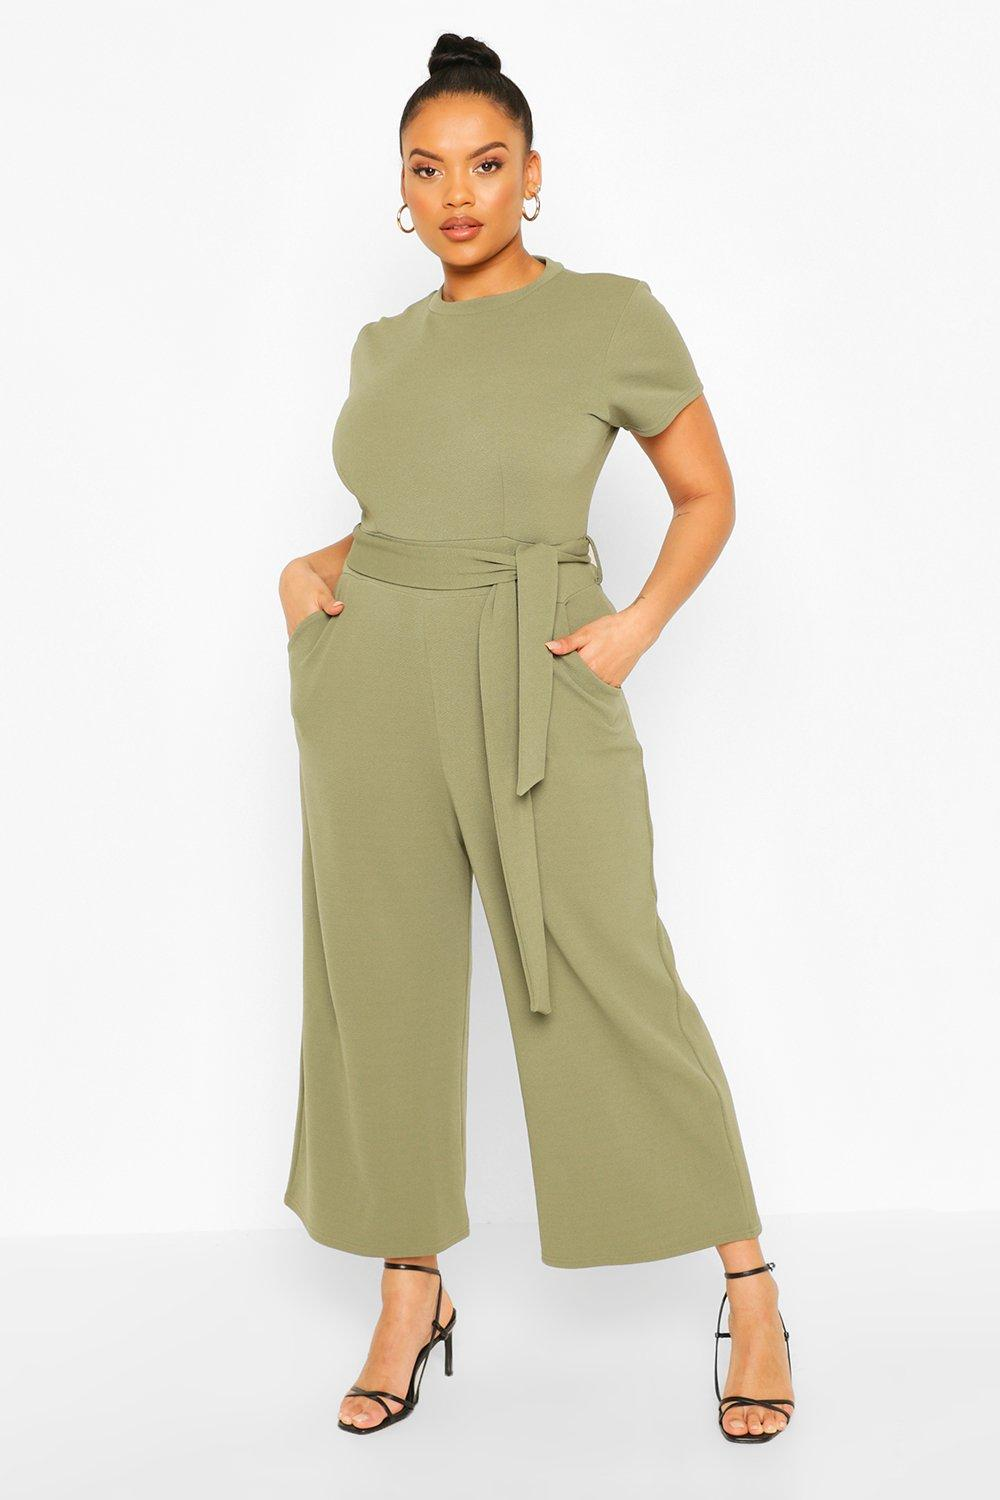 boohoo Womens Plus Tie Belt Culotte Jumpsuit - Green - 20, Green